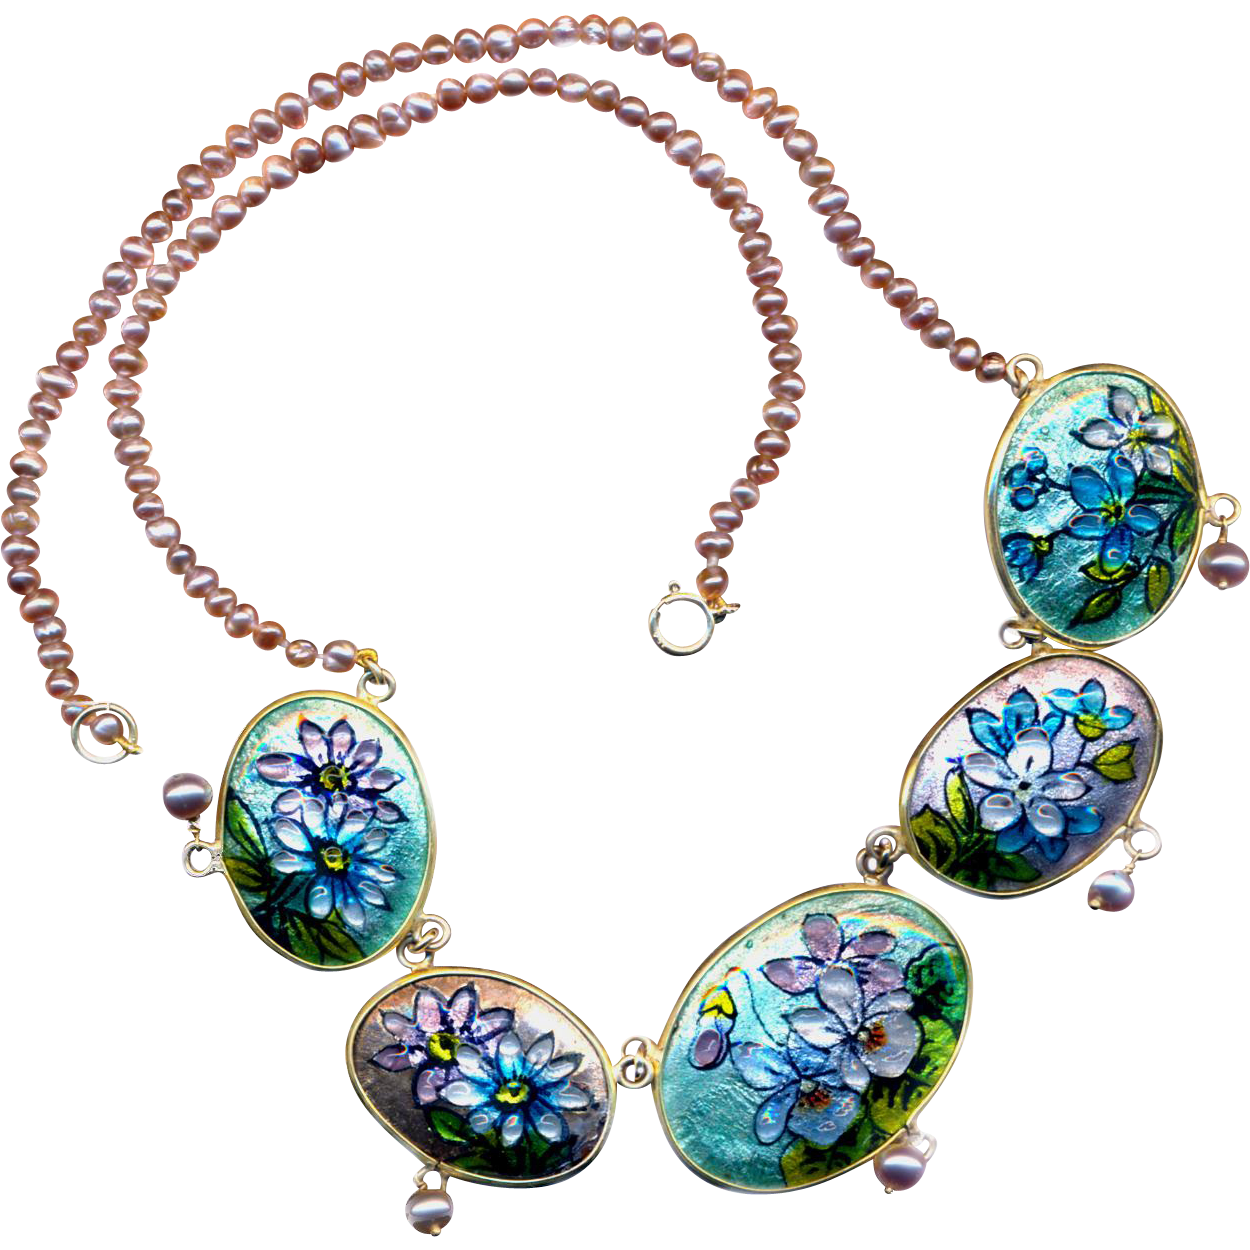 Necklace--Vintage French Limoges Enamel with Pink Pearls in 14 Karat Gold--17 Inches